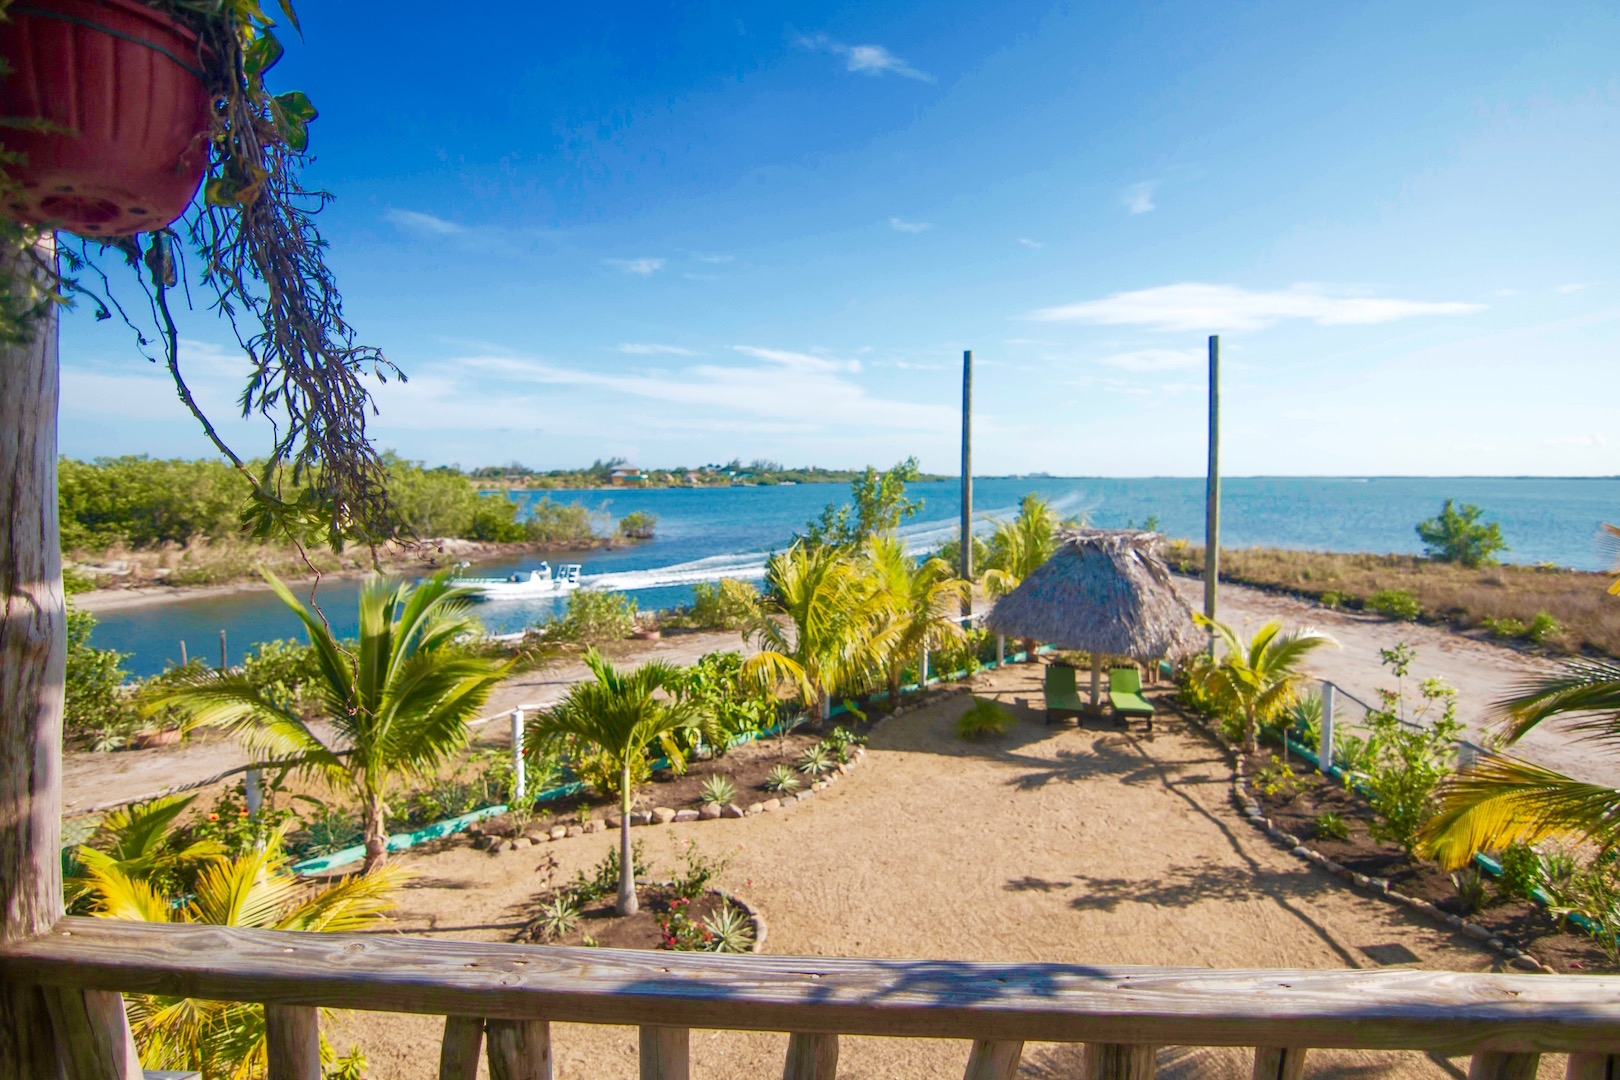 Income Property for Sale in Placencia – Eco-Friendly